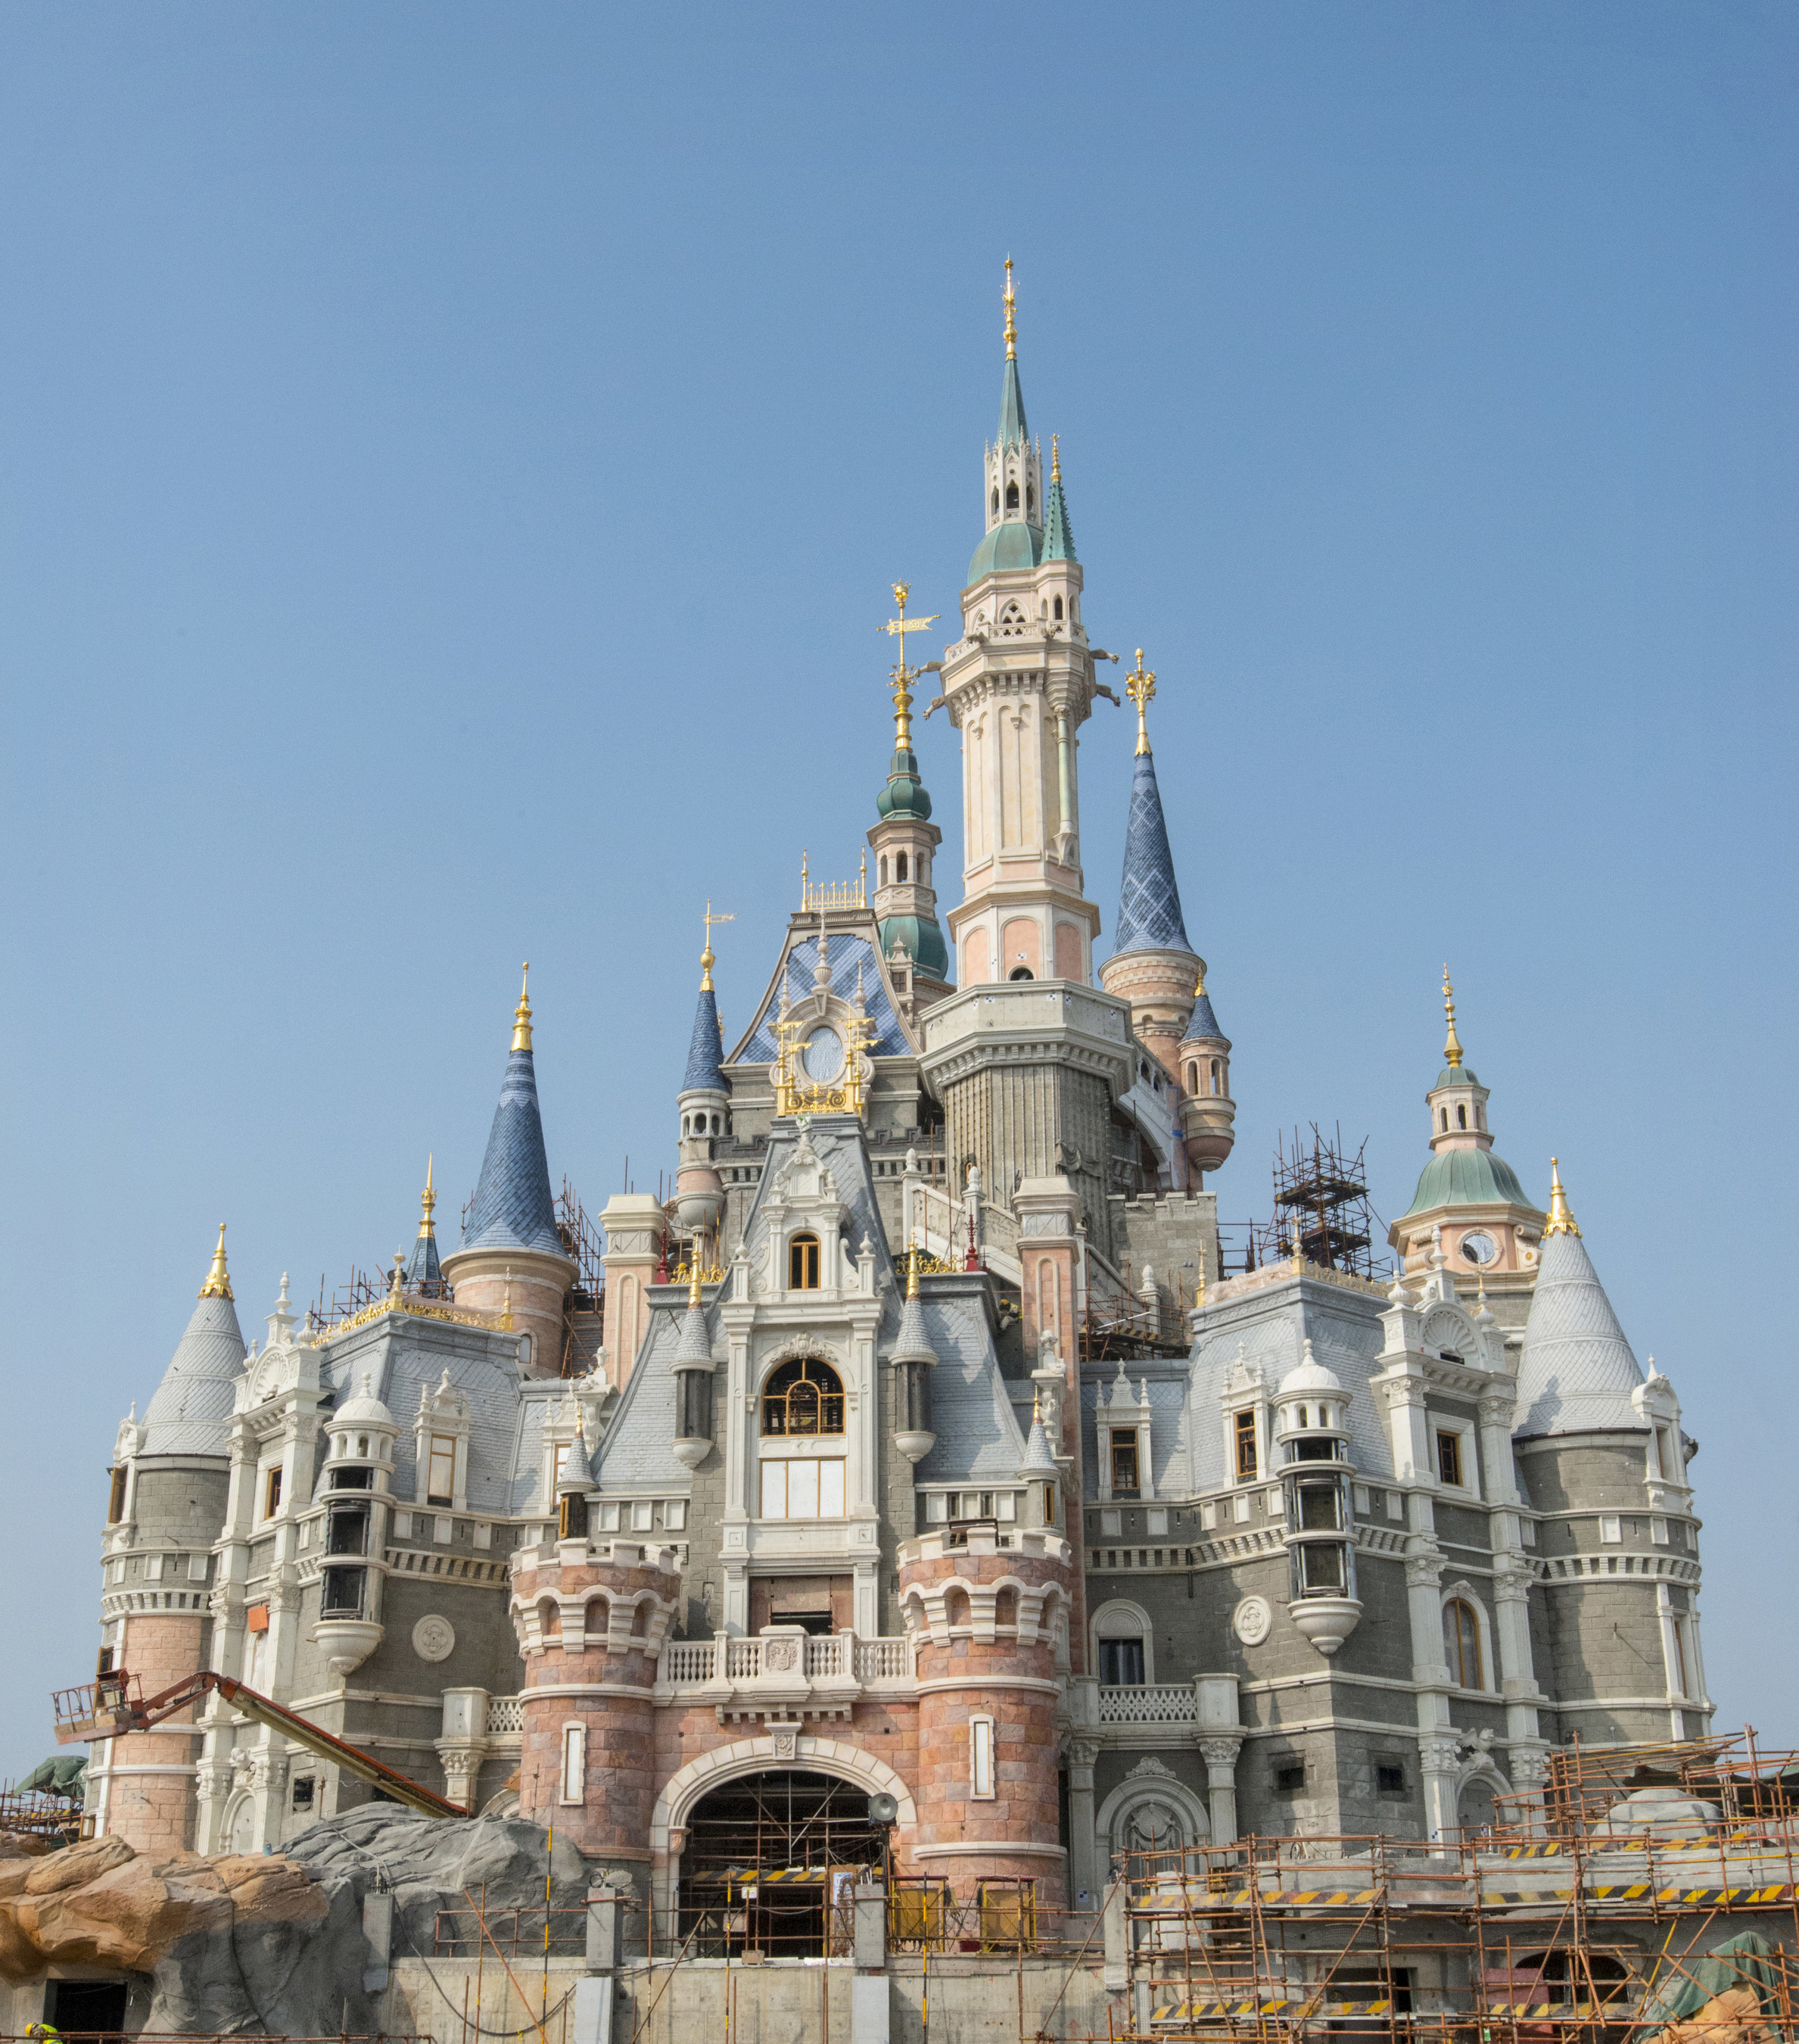 At Shanghai Disneyland, Disney stories will come to life at the tallest, largest and most interactive castle at any Disney theme park. It will offer immersive attractions, dining, shopping and spectacular entertainment, and will be the first castle in a Disney theme park that represents all the Disney princesses.